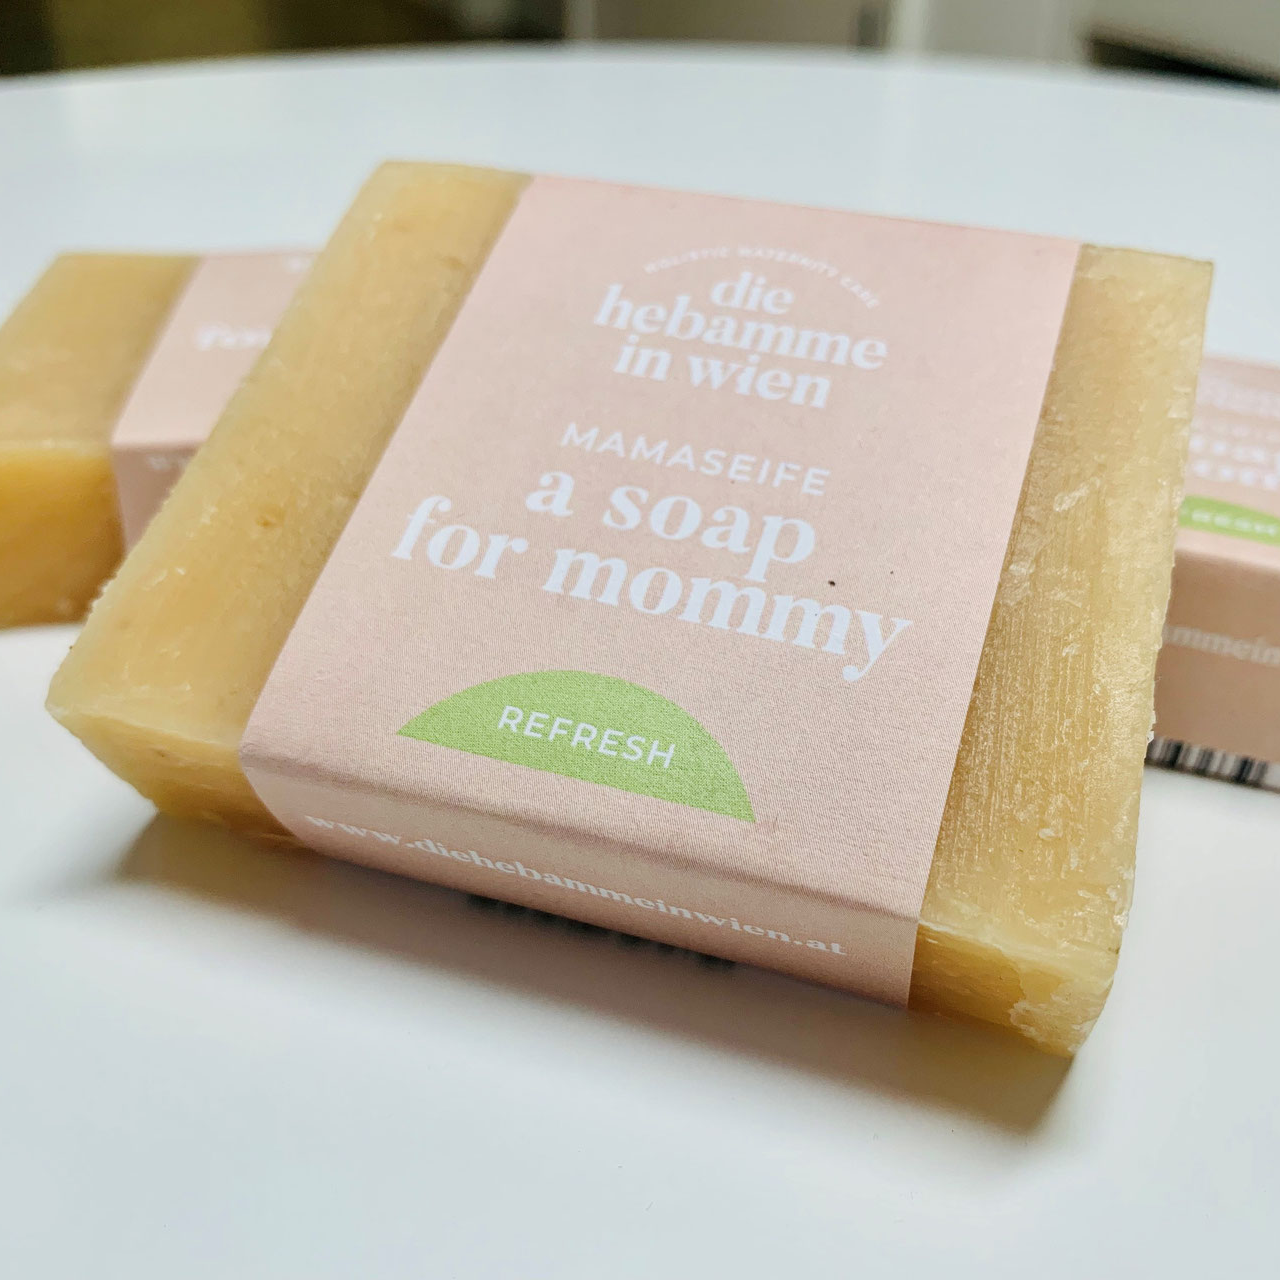 Mama-Seife - a soap for mummy  - Refresh - die Hebamme in Wien